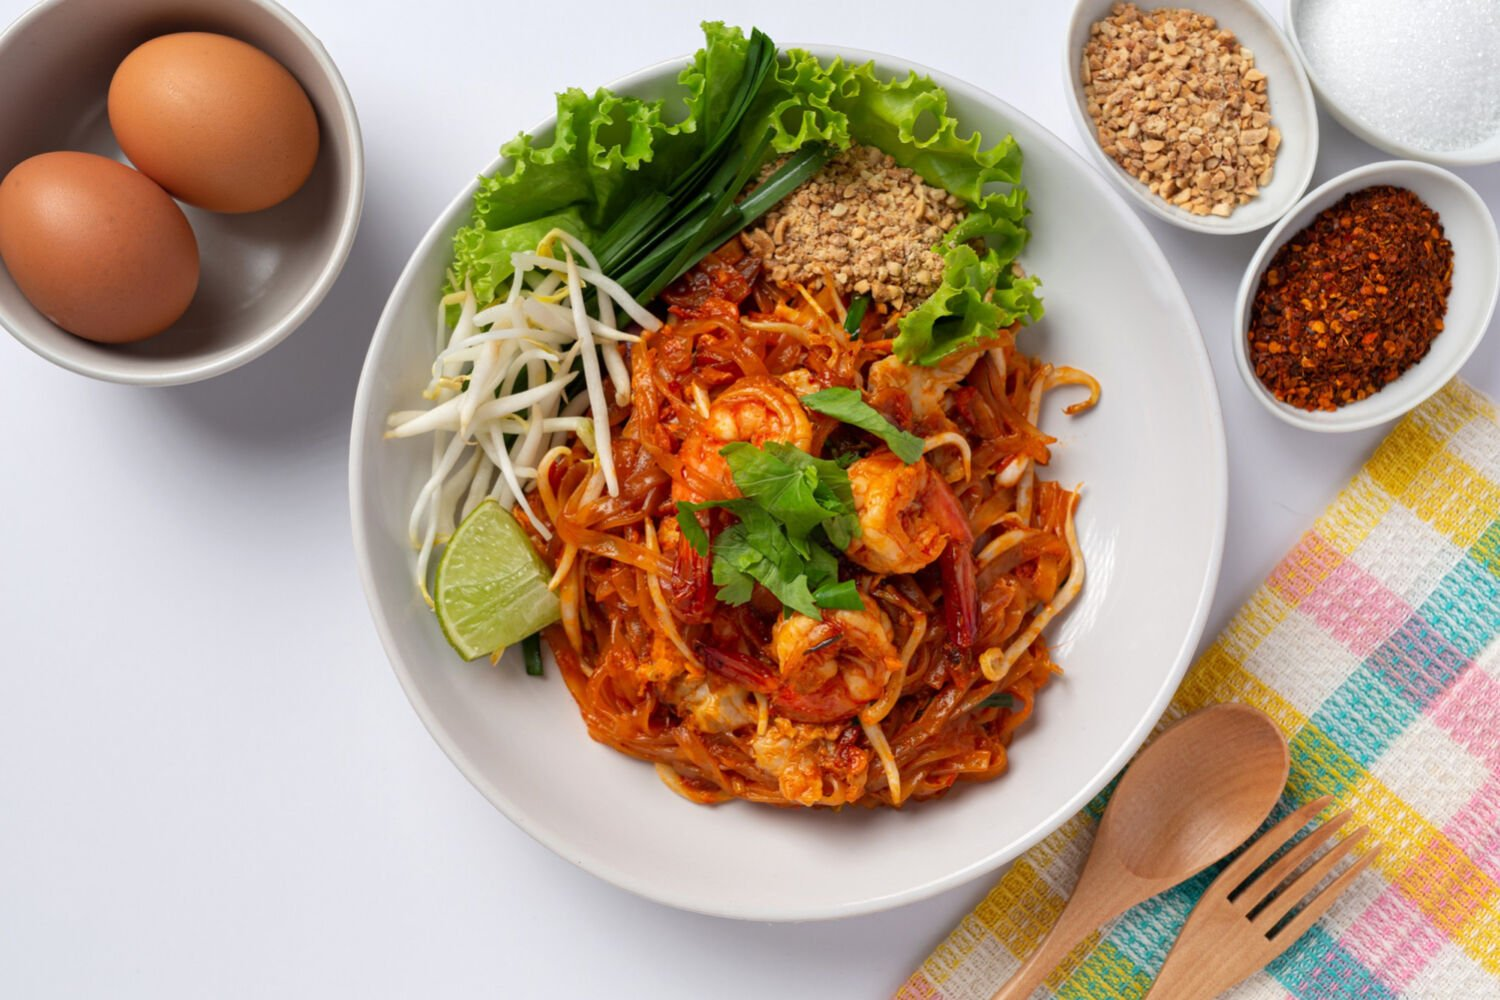 Thai food - pros and cons of living in Thailand